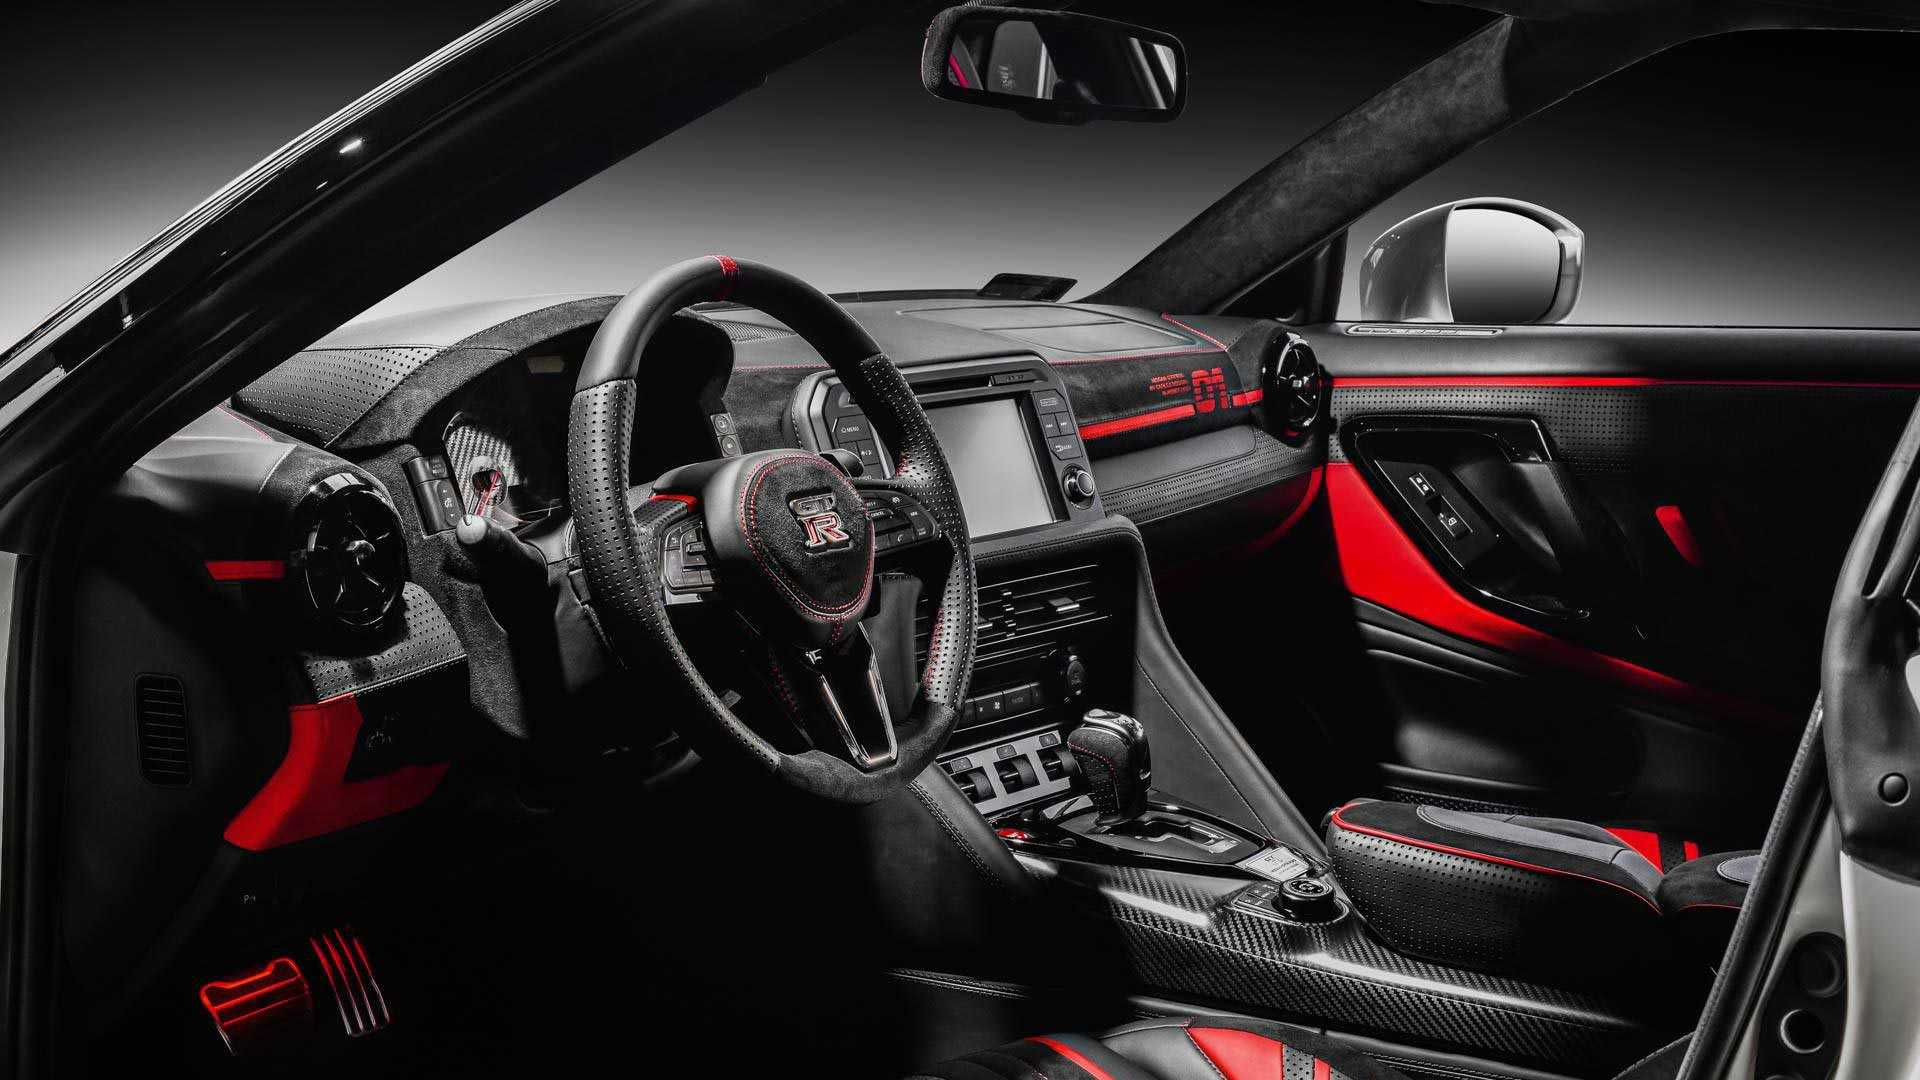 This Nissan GT-R has been to Carlex Design, leaving the German tuner's workshop with a brand-new, opulent interior